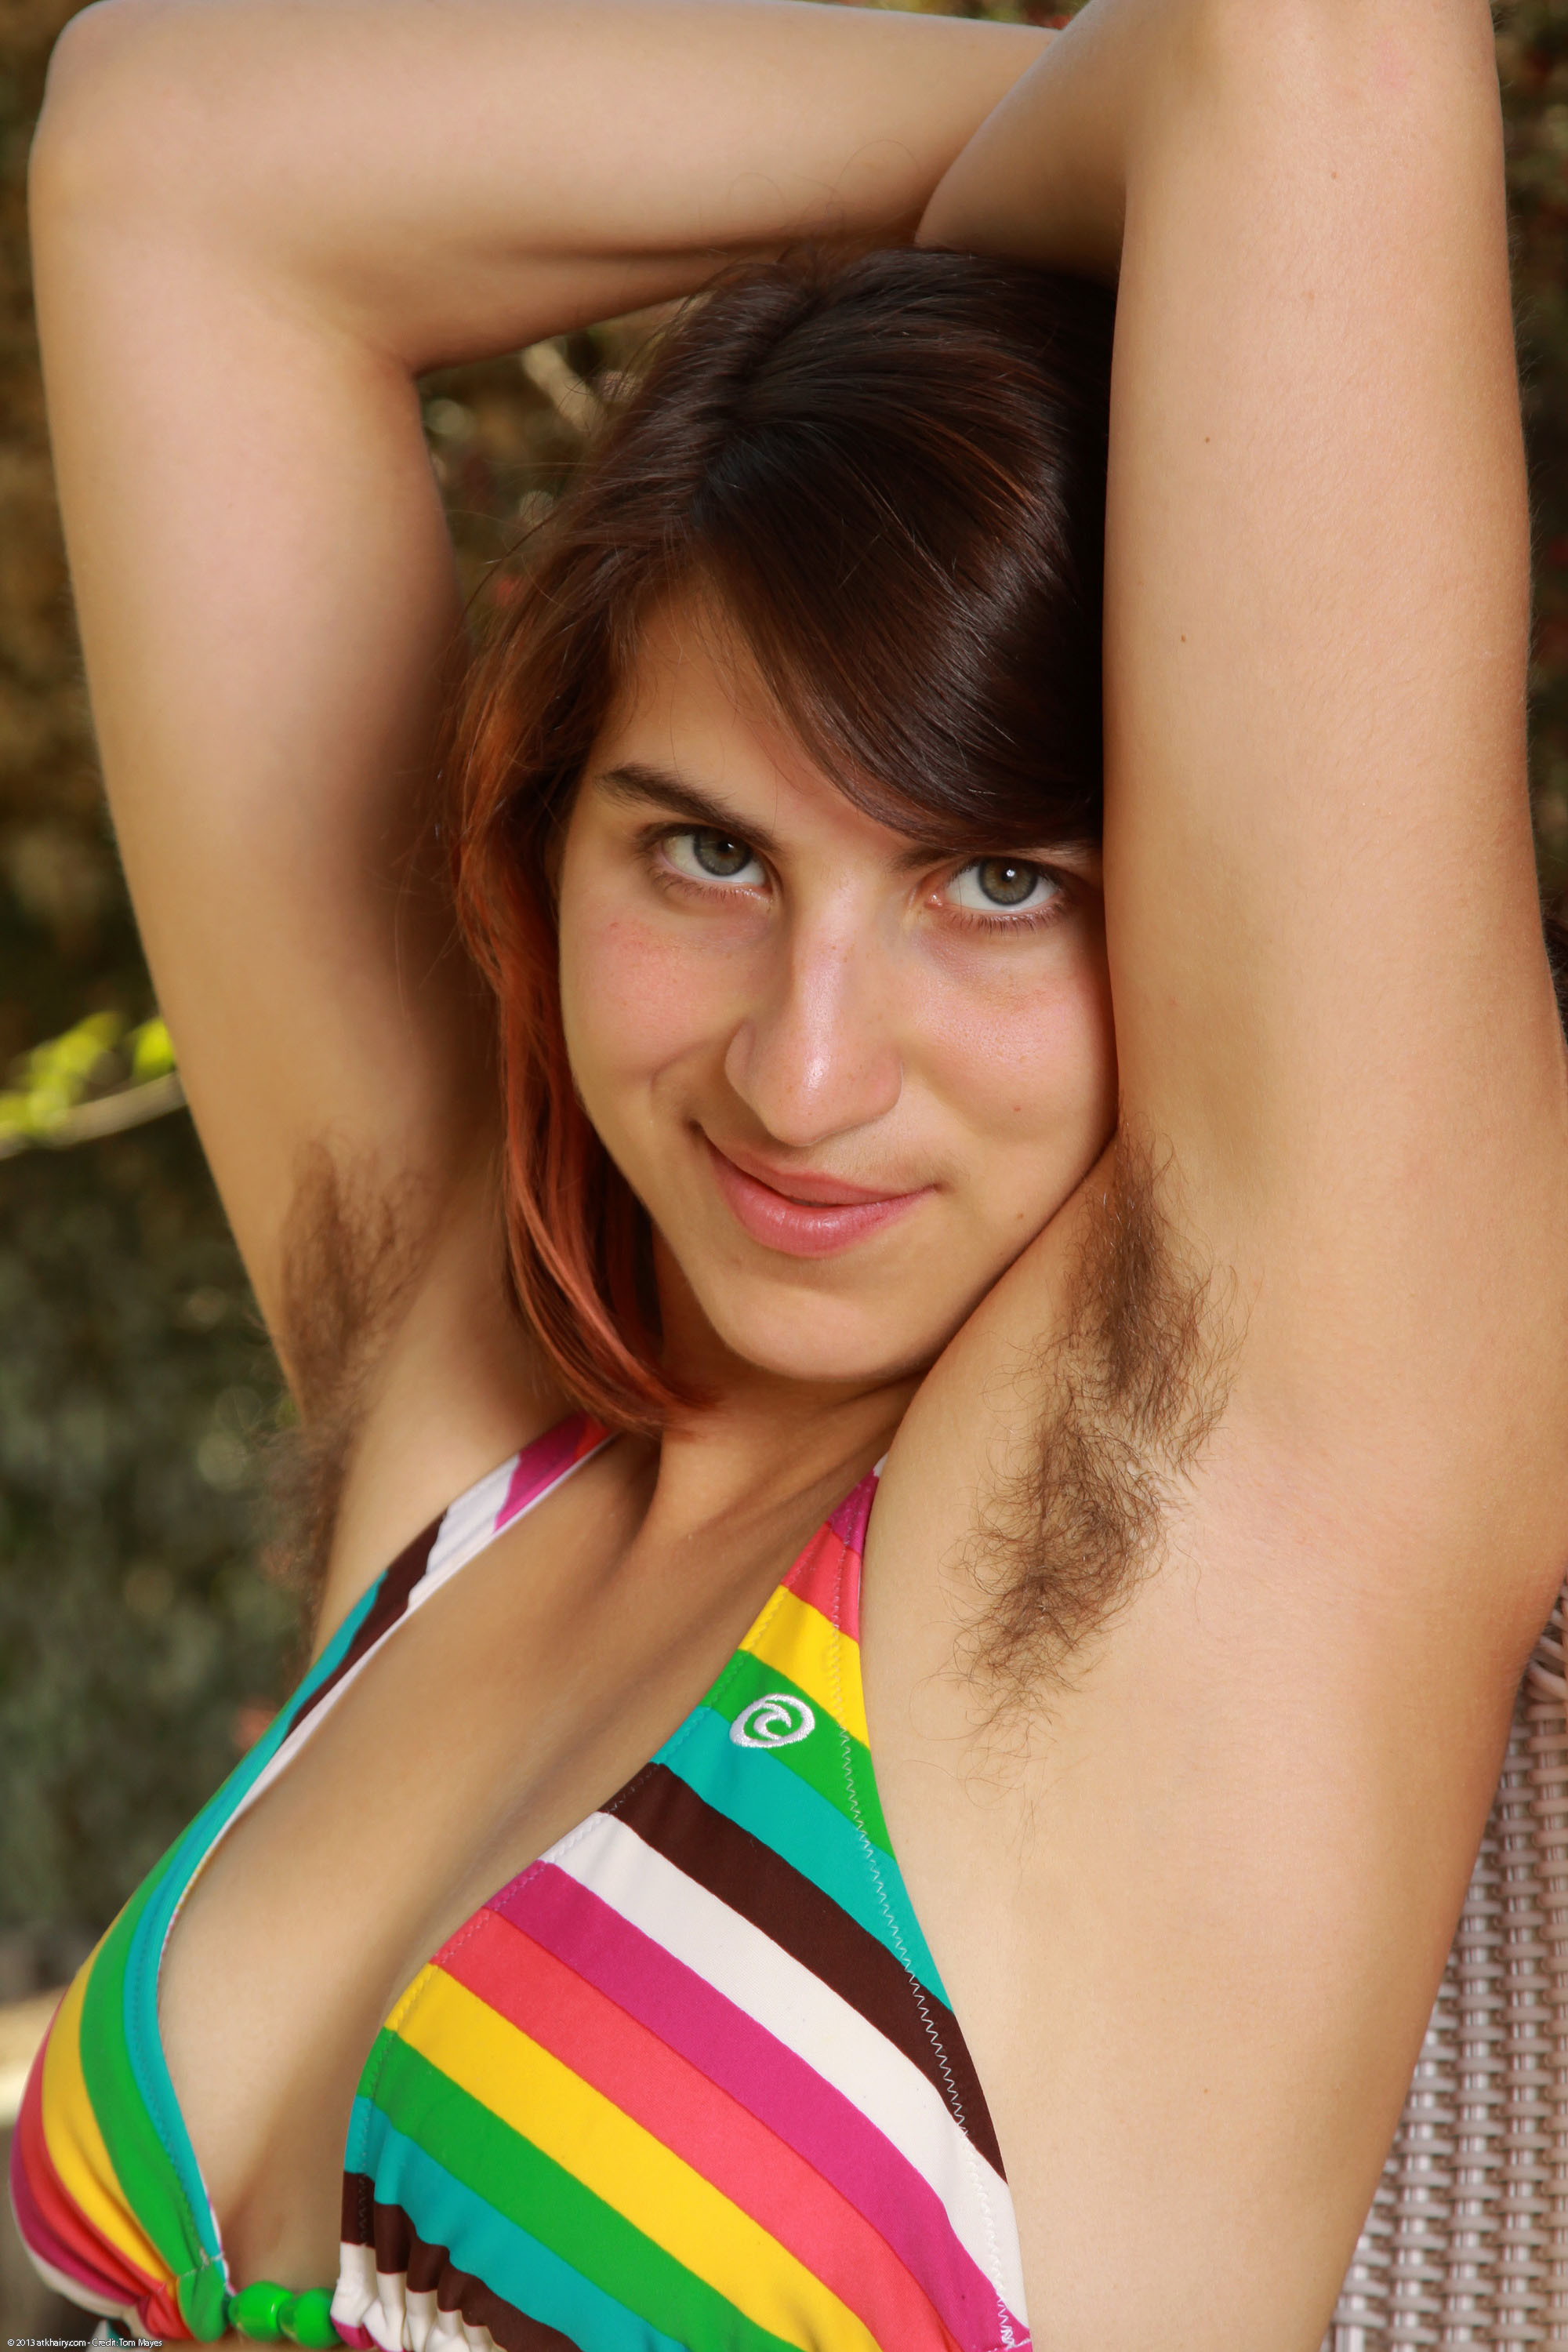 Hairy armpits with women